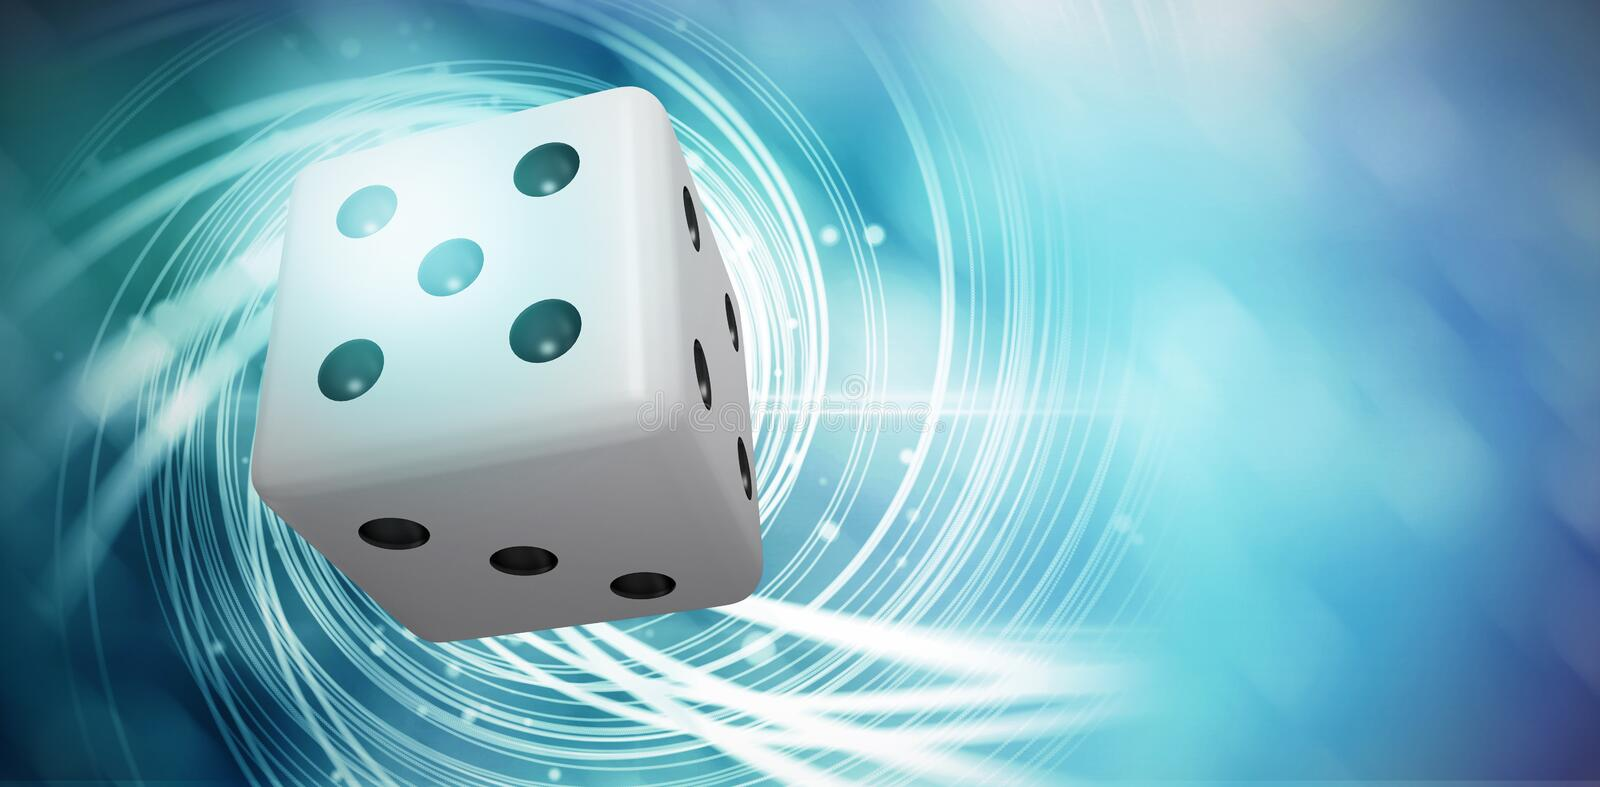 Composite image of digitally generated image of 3d dice. Digitally generated image of 3D dice against background with shiny spiral royalty free illustration